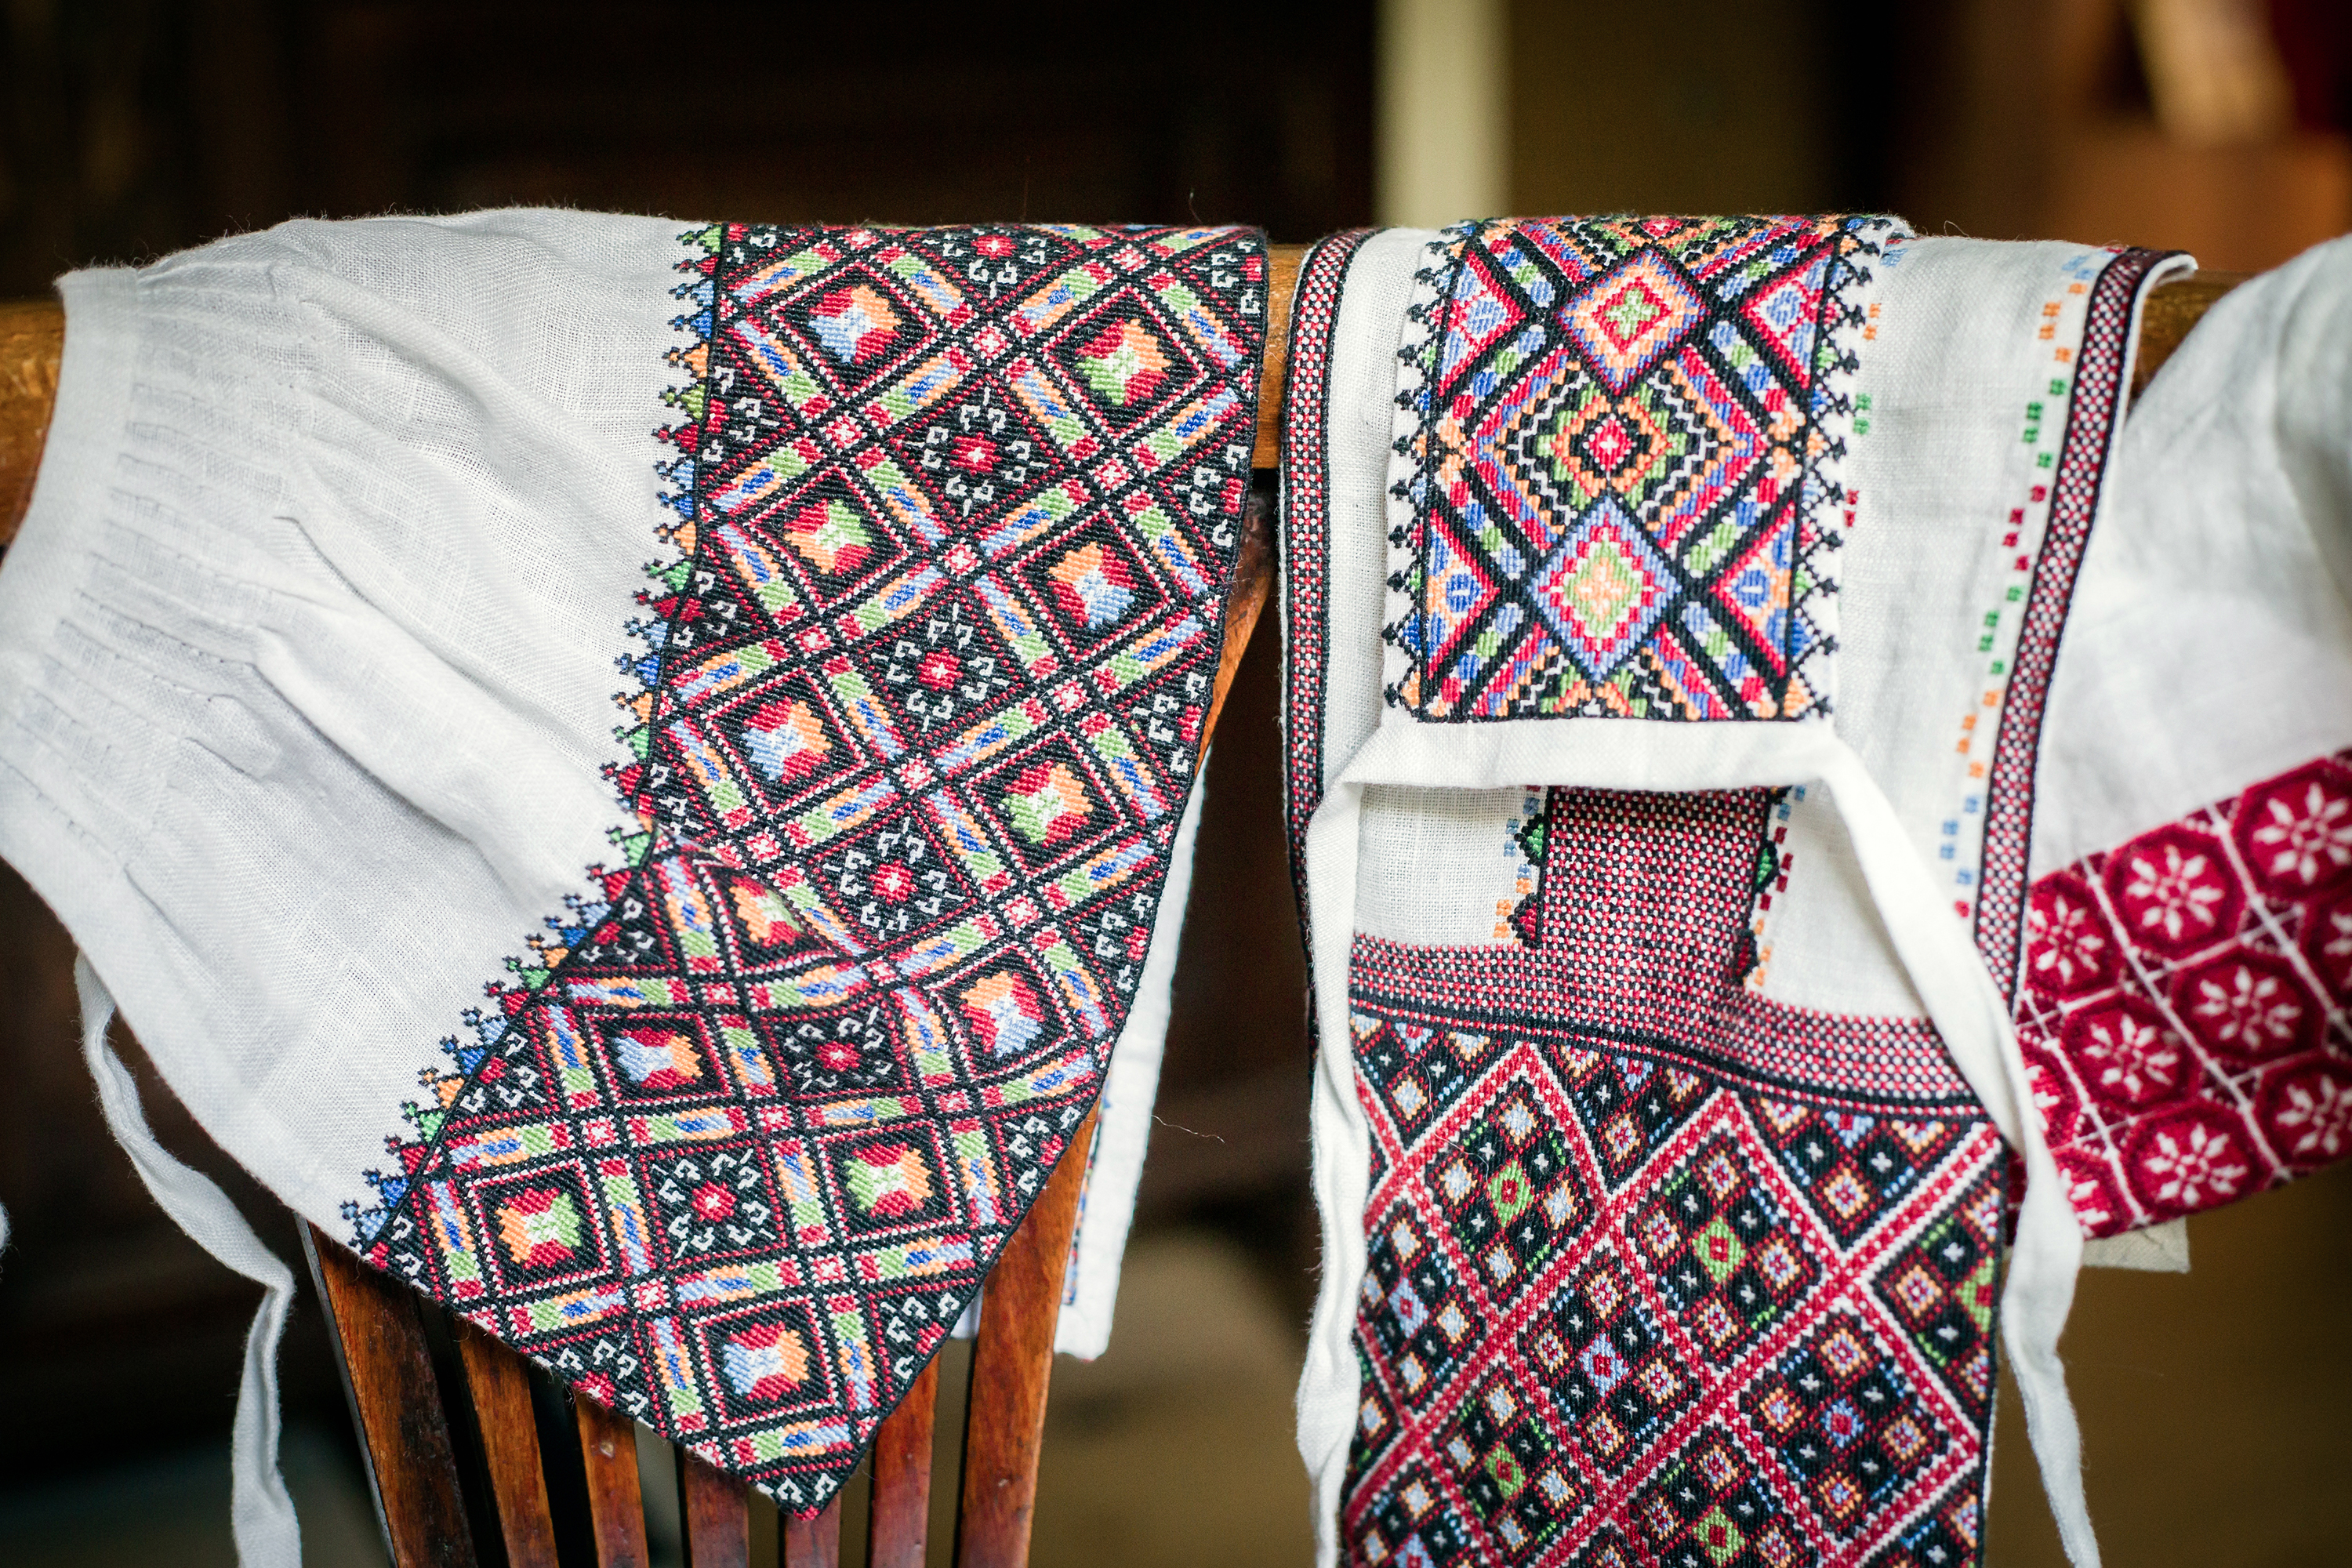 The Huculi embroidery.